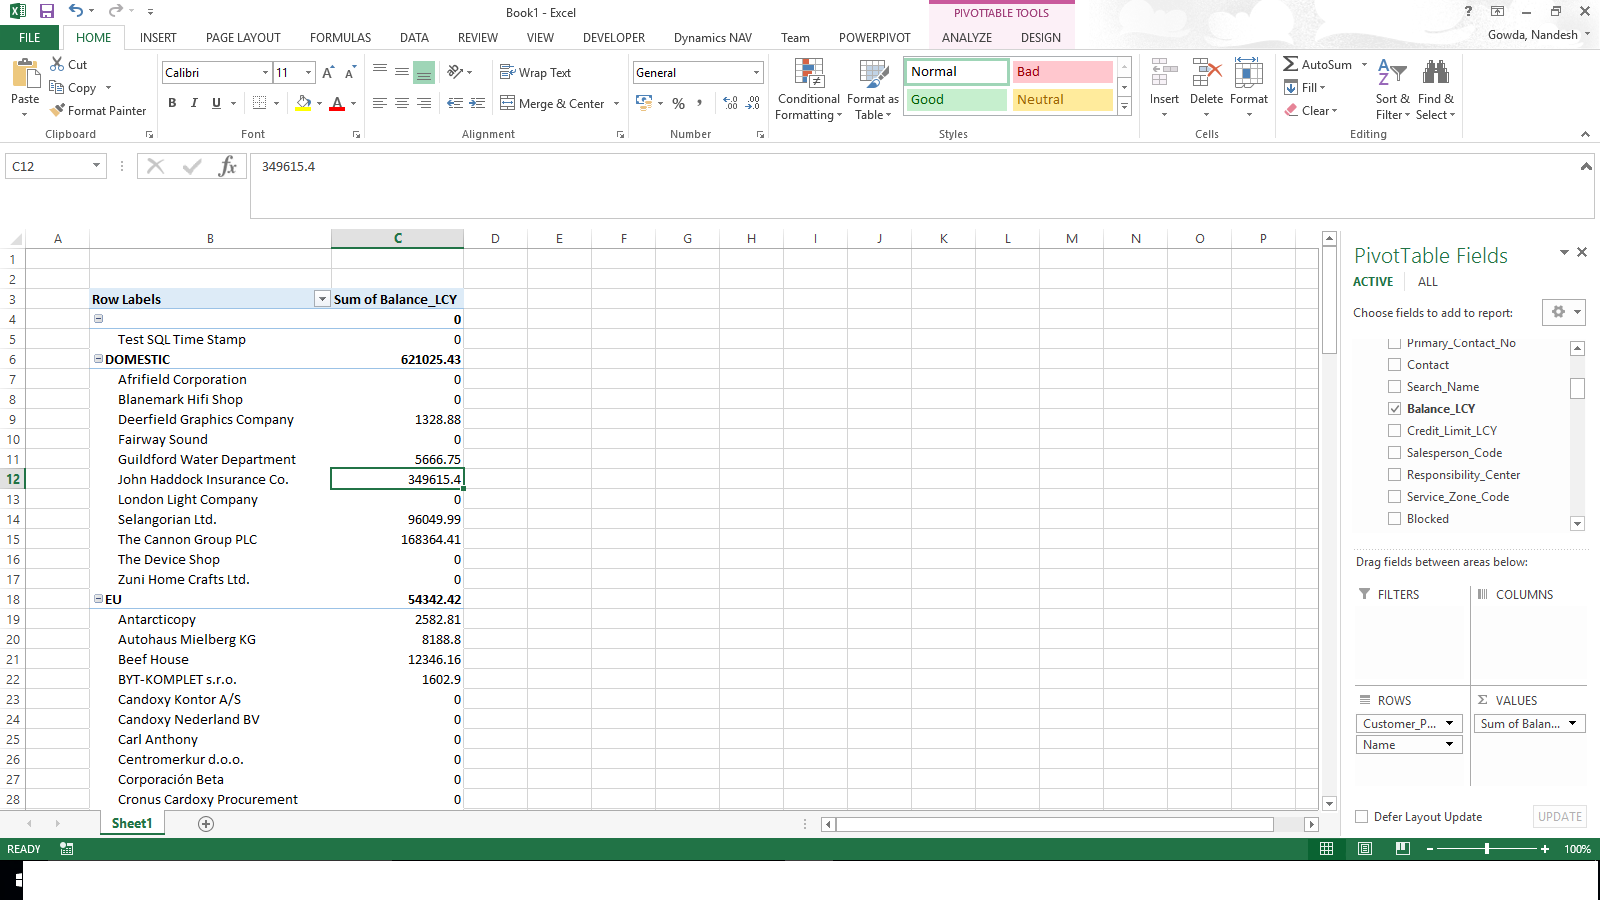 Nandesh Gowda Viewing Page Data In Excel Using